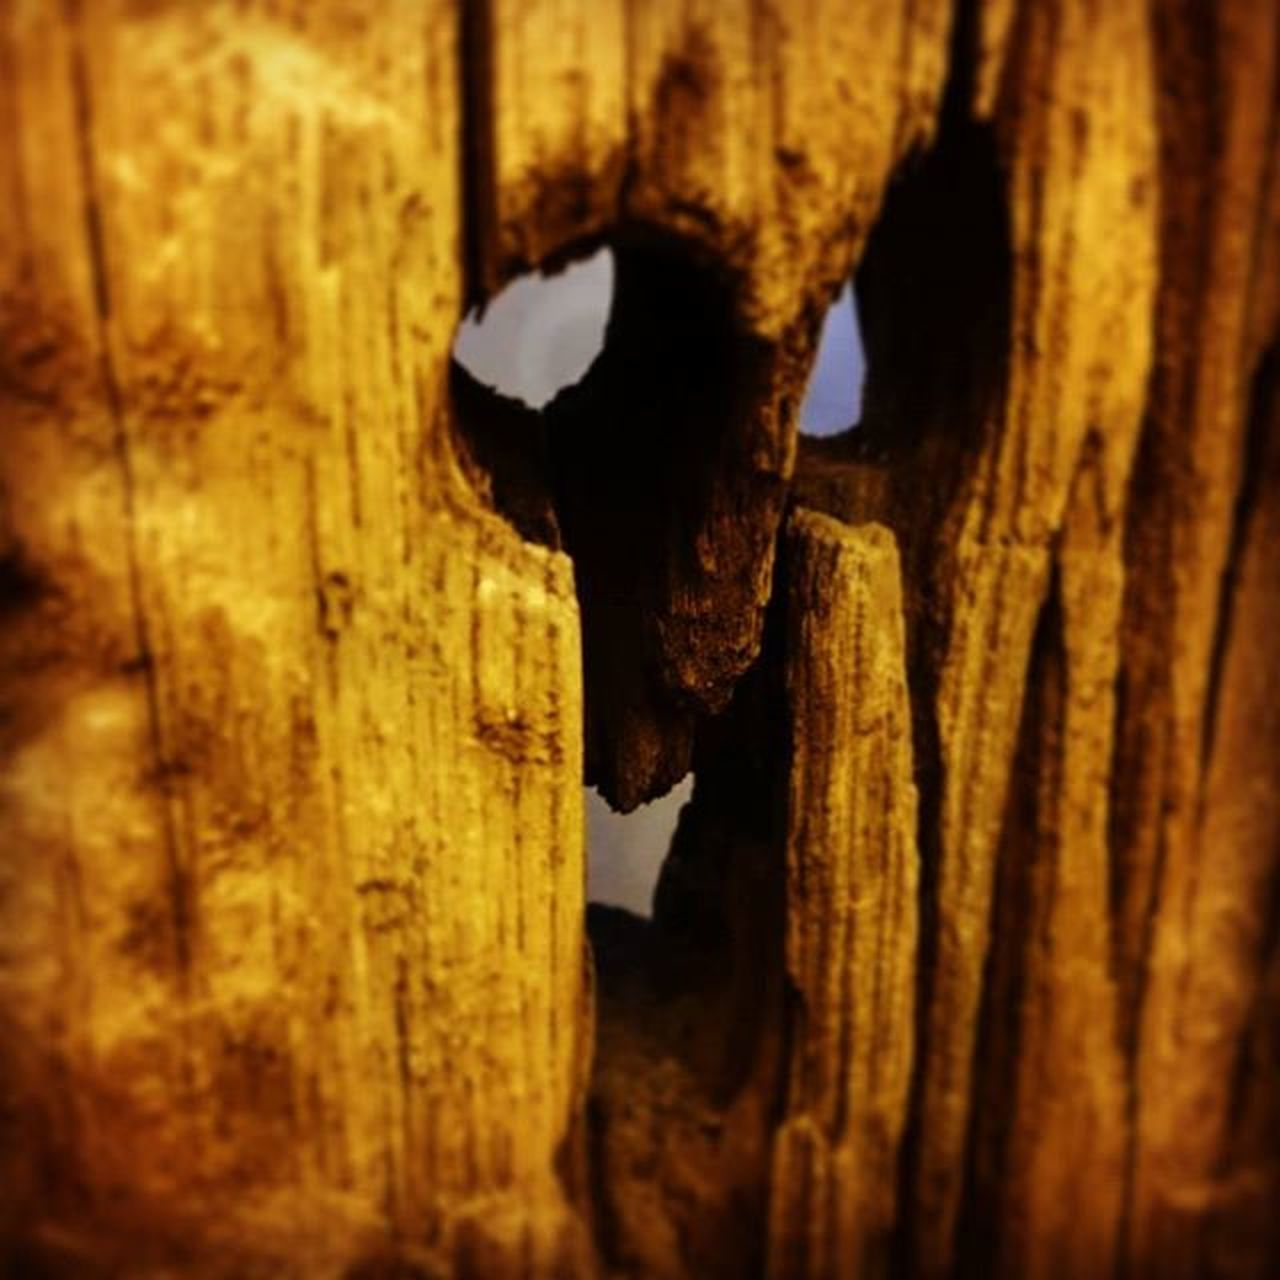 Hidden face EyeEm Hiddenface Wood Woodstructure Looktwice Specialphoto Specialpic Sonyxperia XPERIA Xperiaphotoacademy XperiaZ3compact